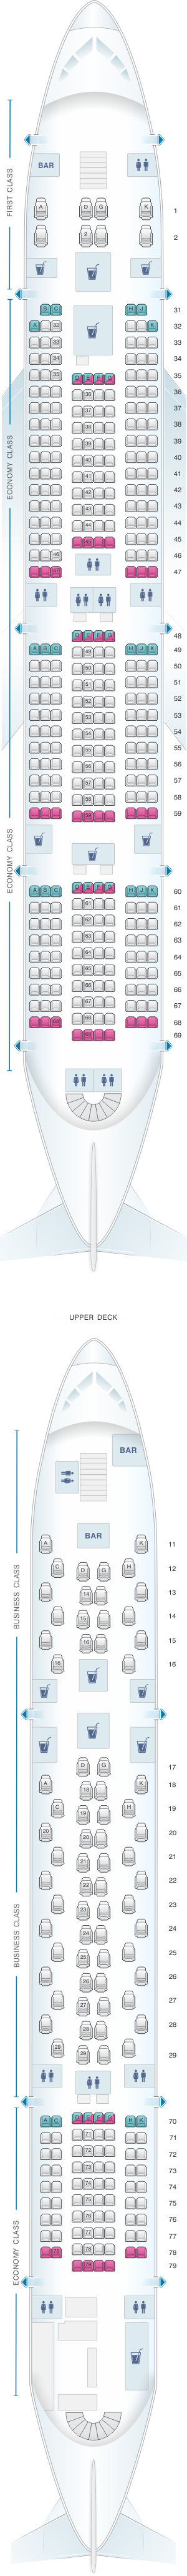 Seat map for China Southern Airlines Airbus A380